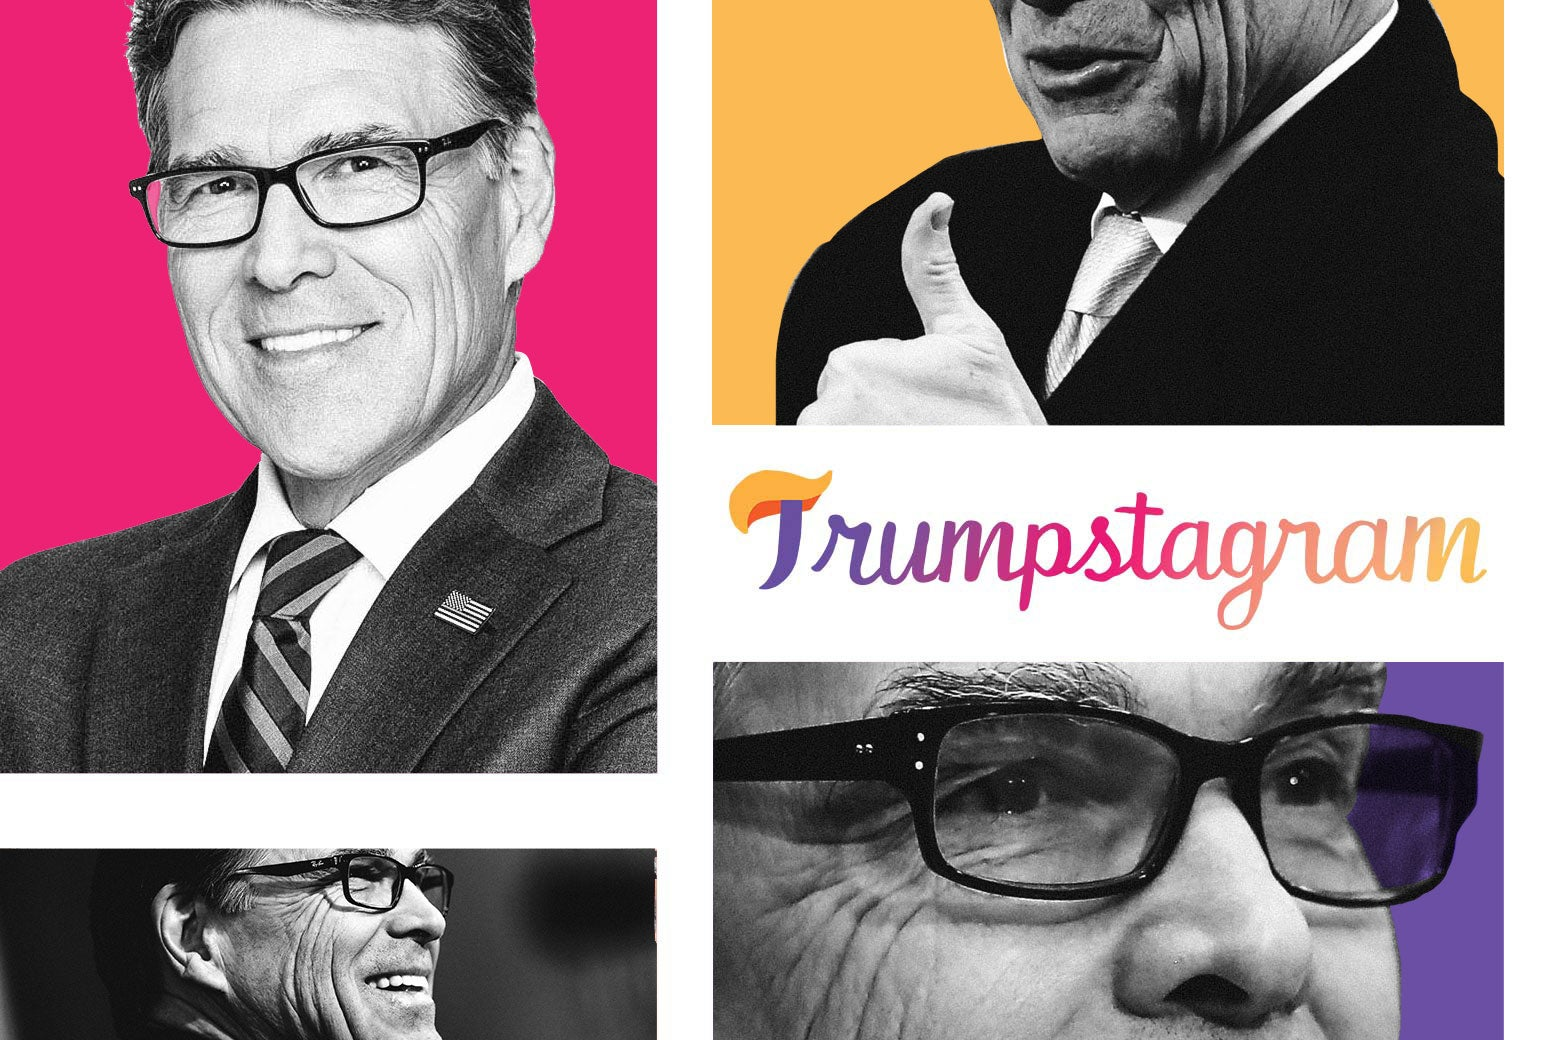 A grid featuring photos of Rick Perry smiling and giving the thumbs-up.